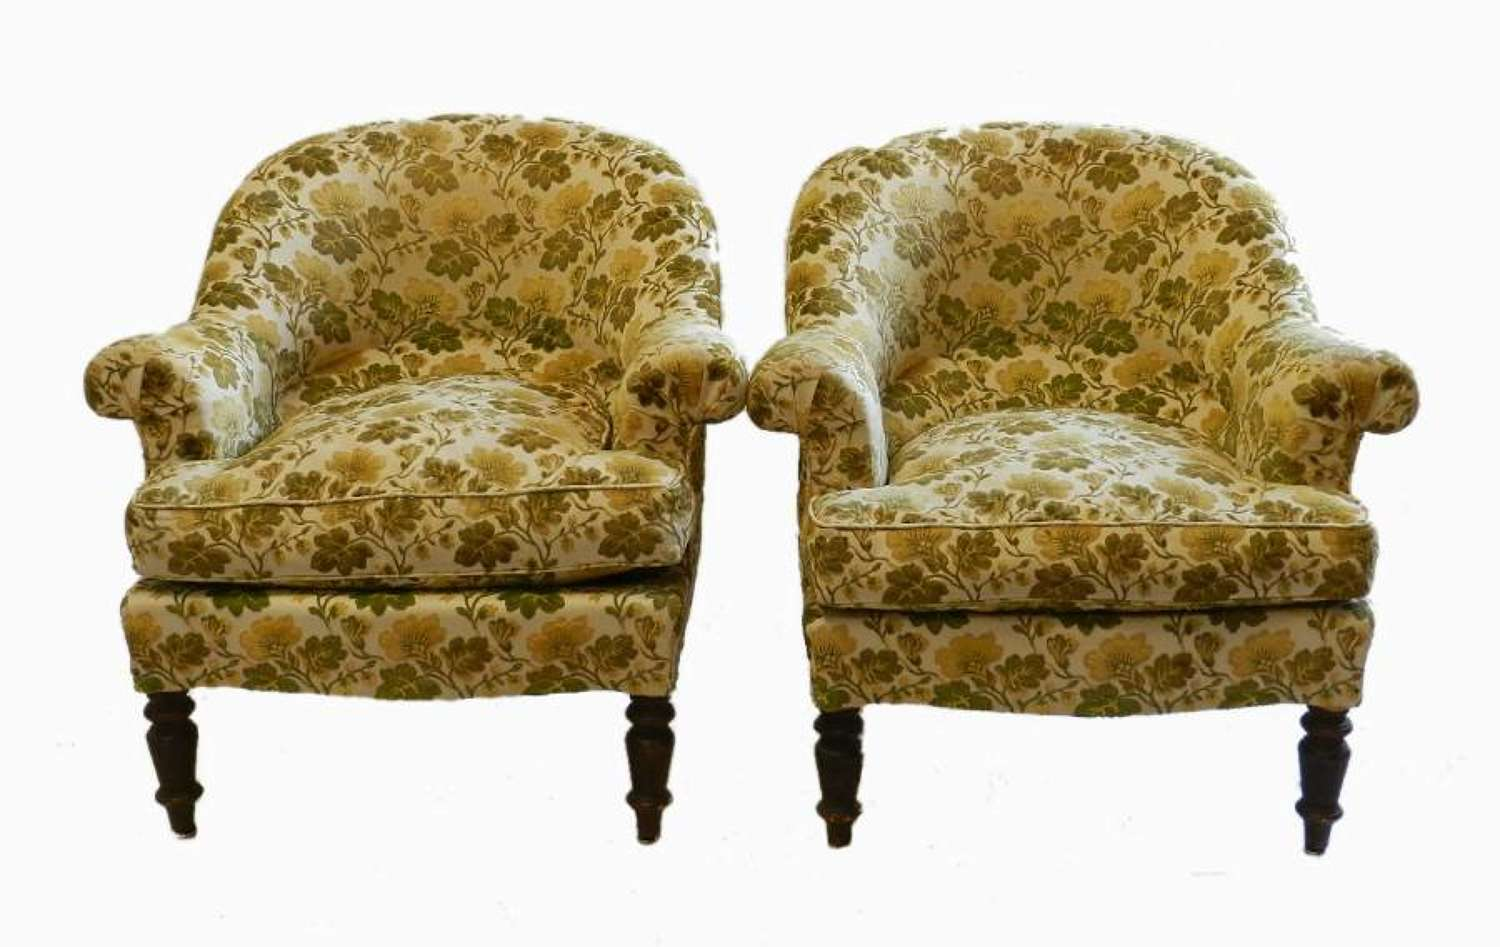 C19 French Comfy Pair of Armchairs use or recover